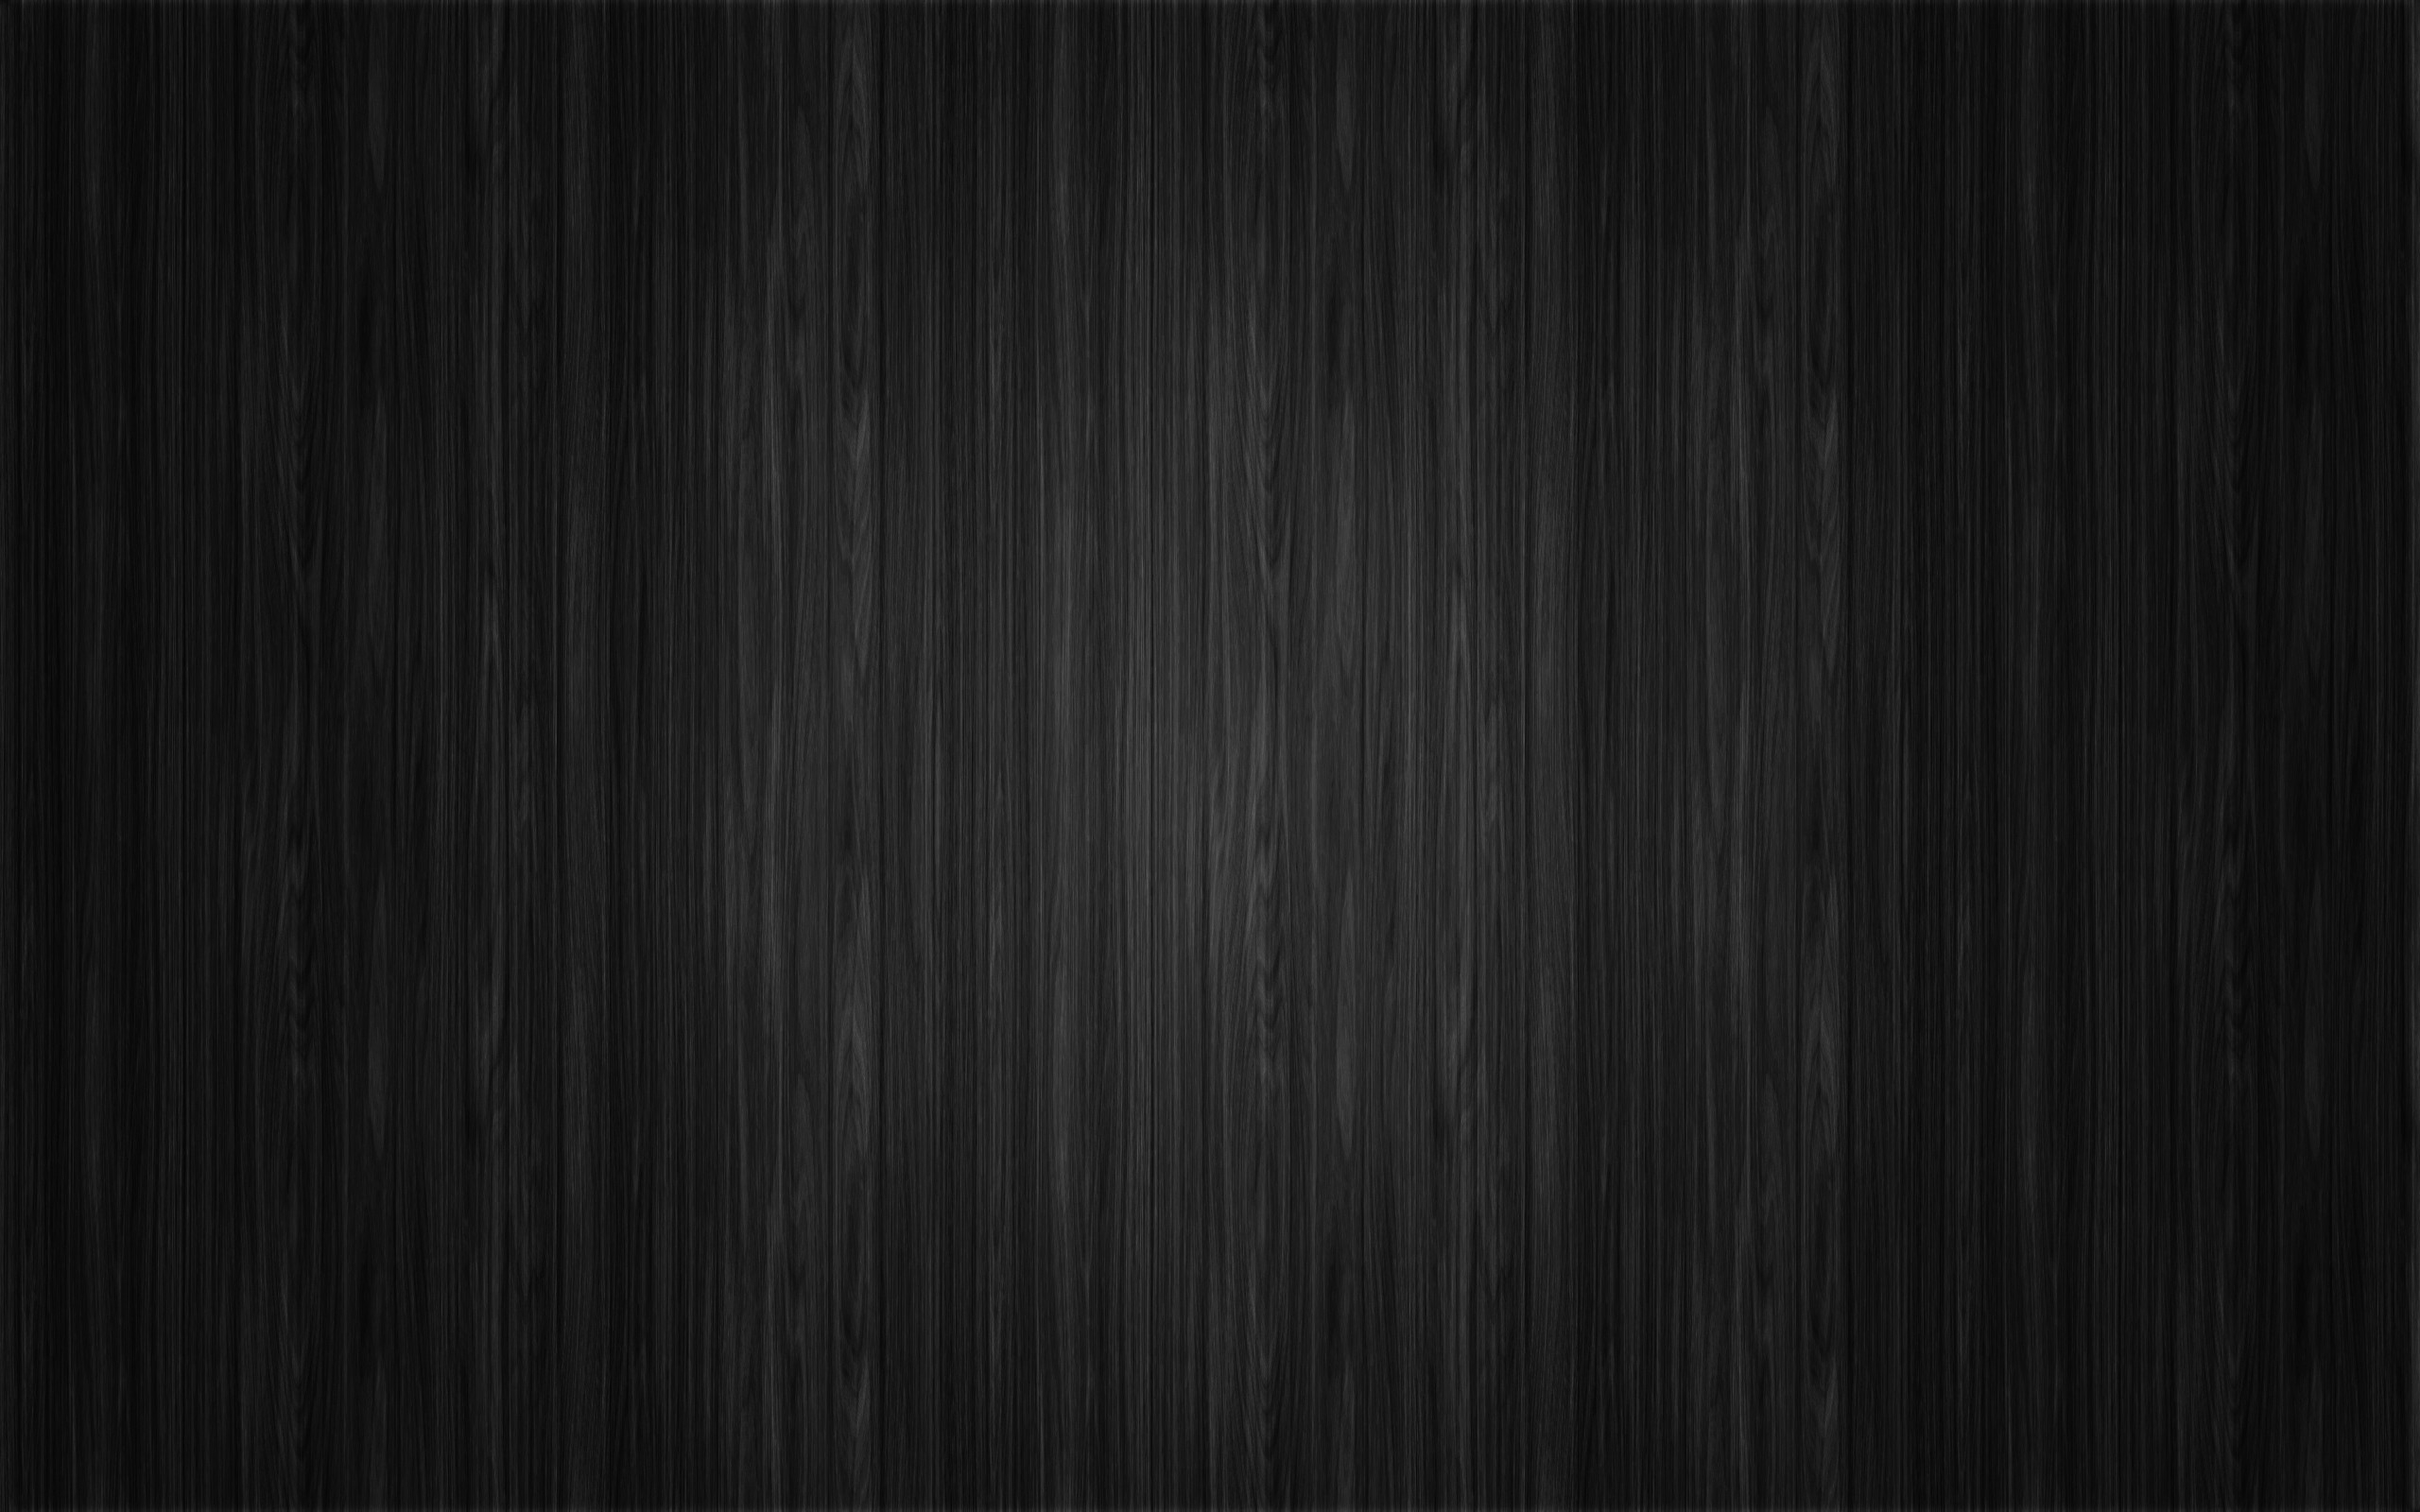 2560x1600 Black Abstract Wallpaper